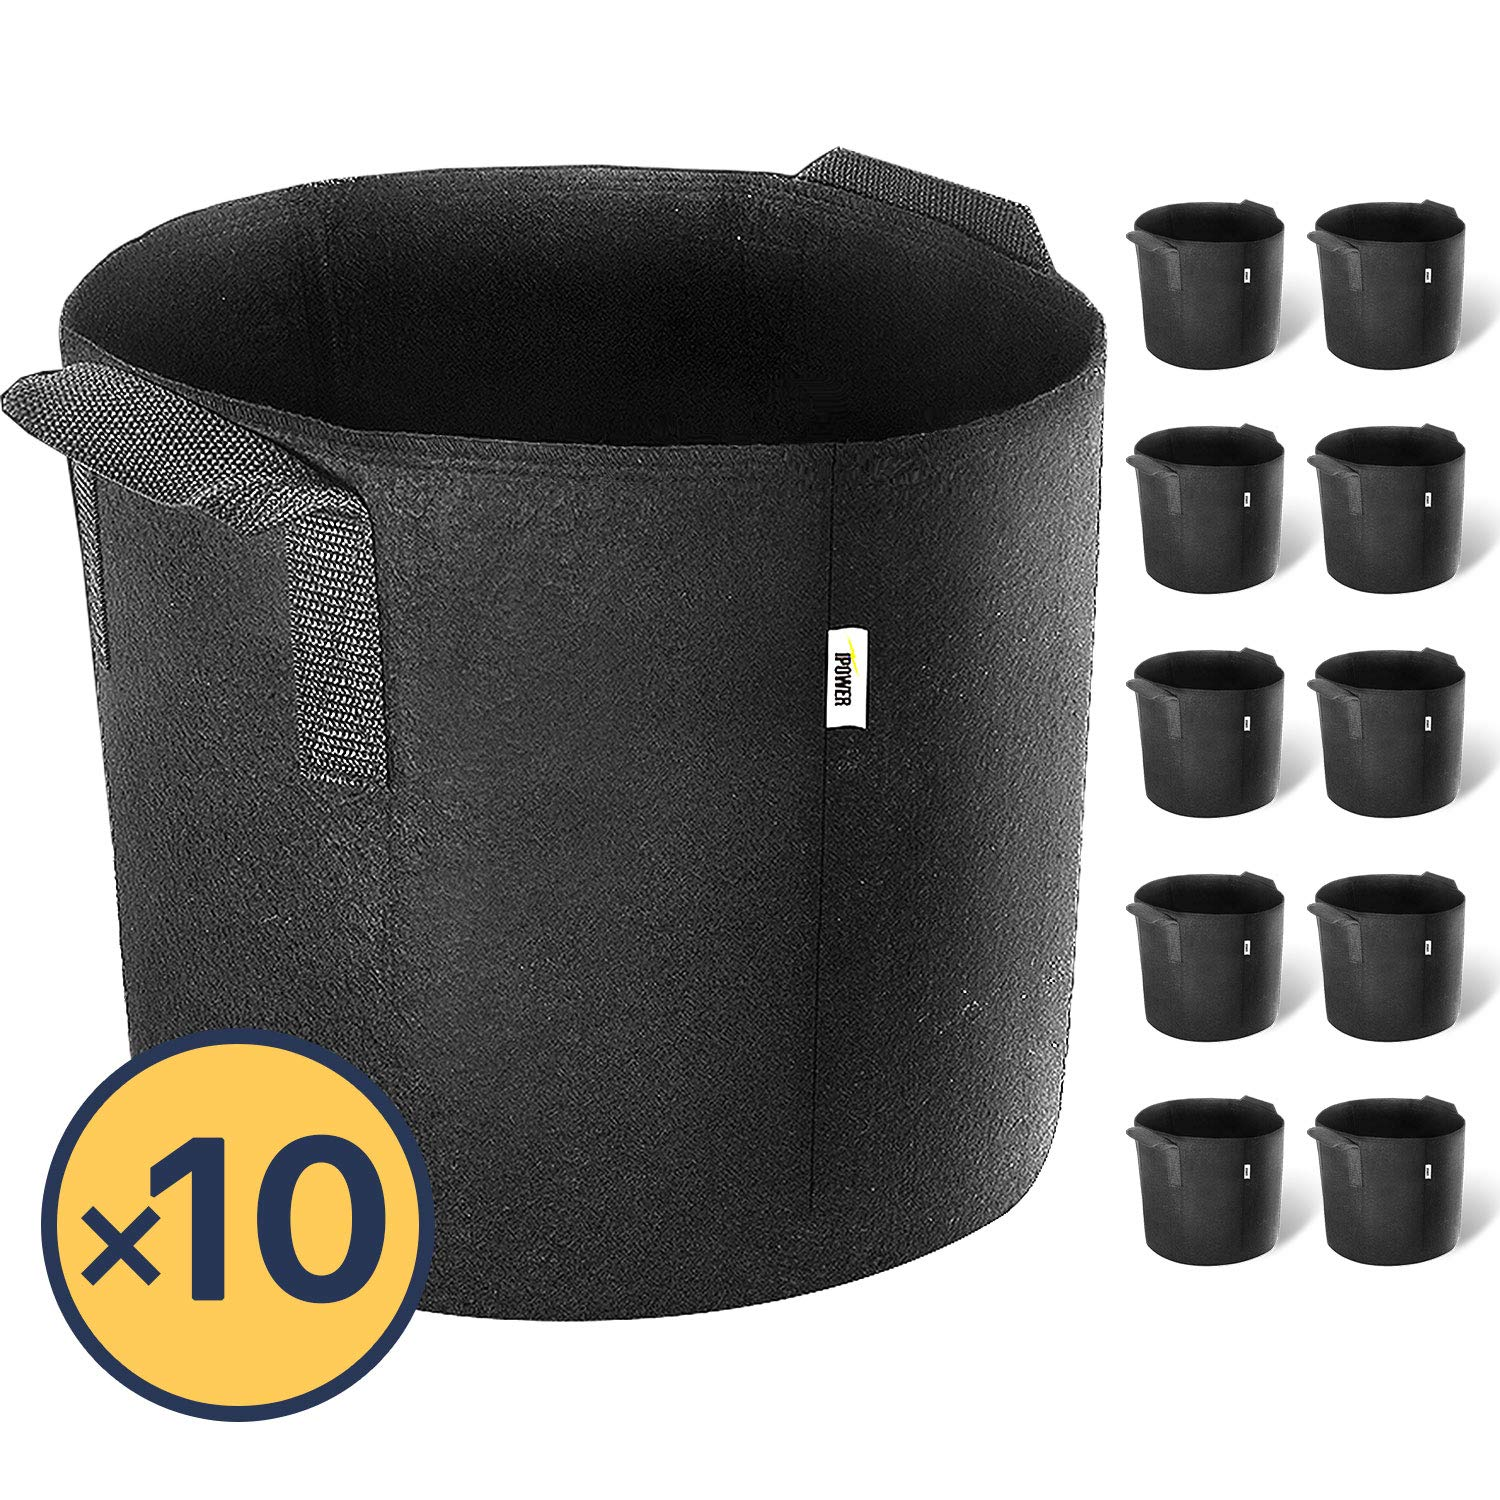 iPower 3-Gallon 10-Pack Grow Bags Fabric Aeration Pots Container with Strap Handles for Nursery Garden and Planting(Black)